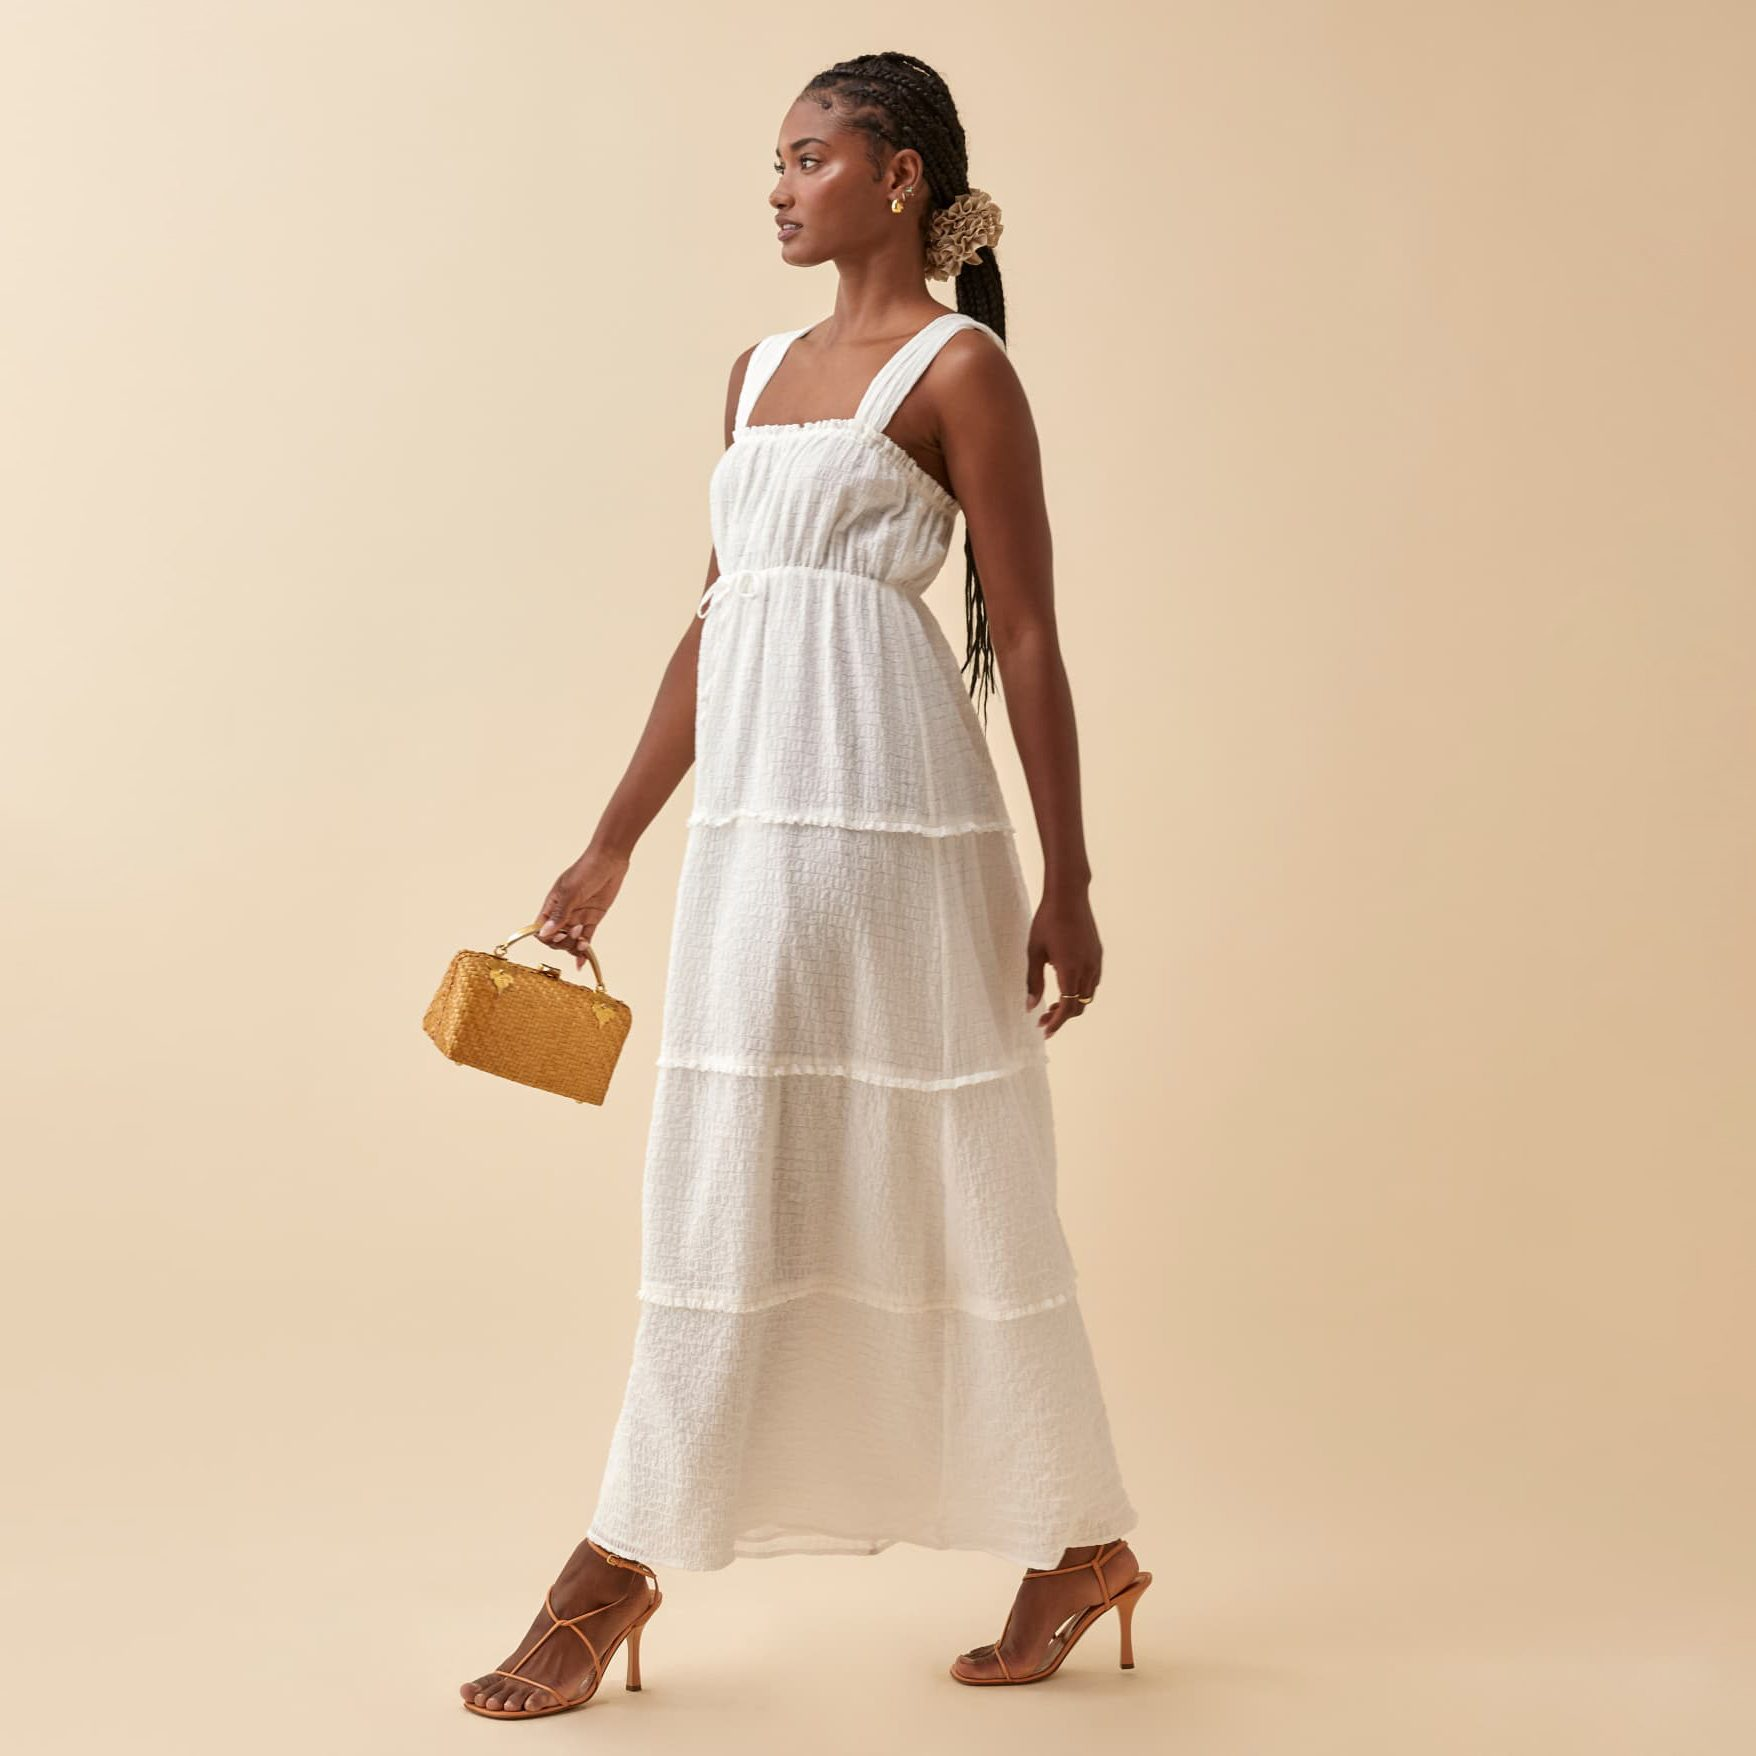 the Ivie Dress from the reformation